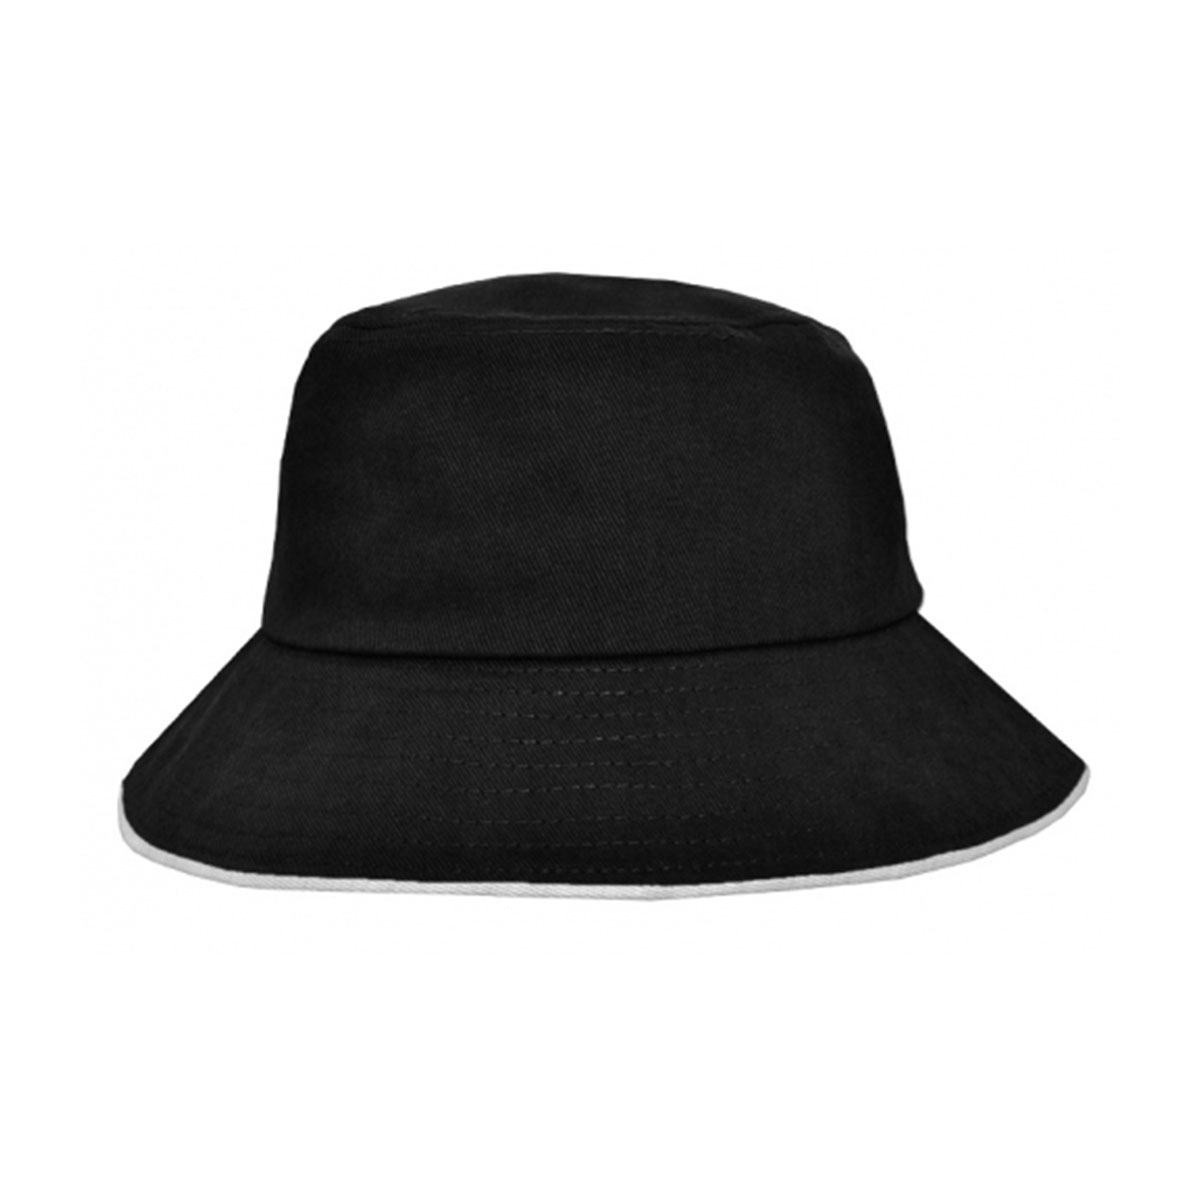 Bucket Hat Sandwich Design-Black / White